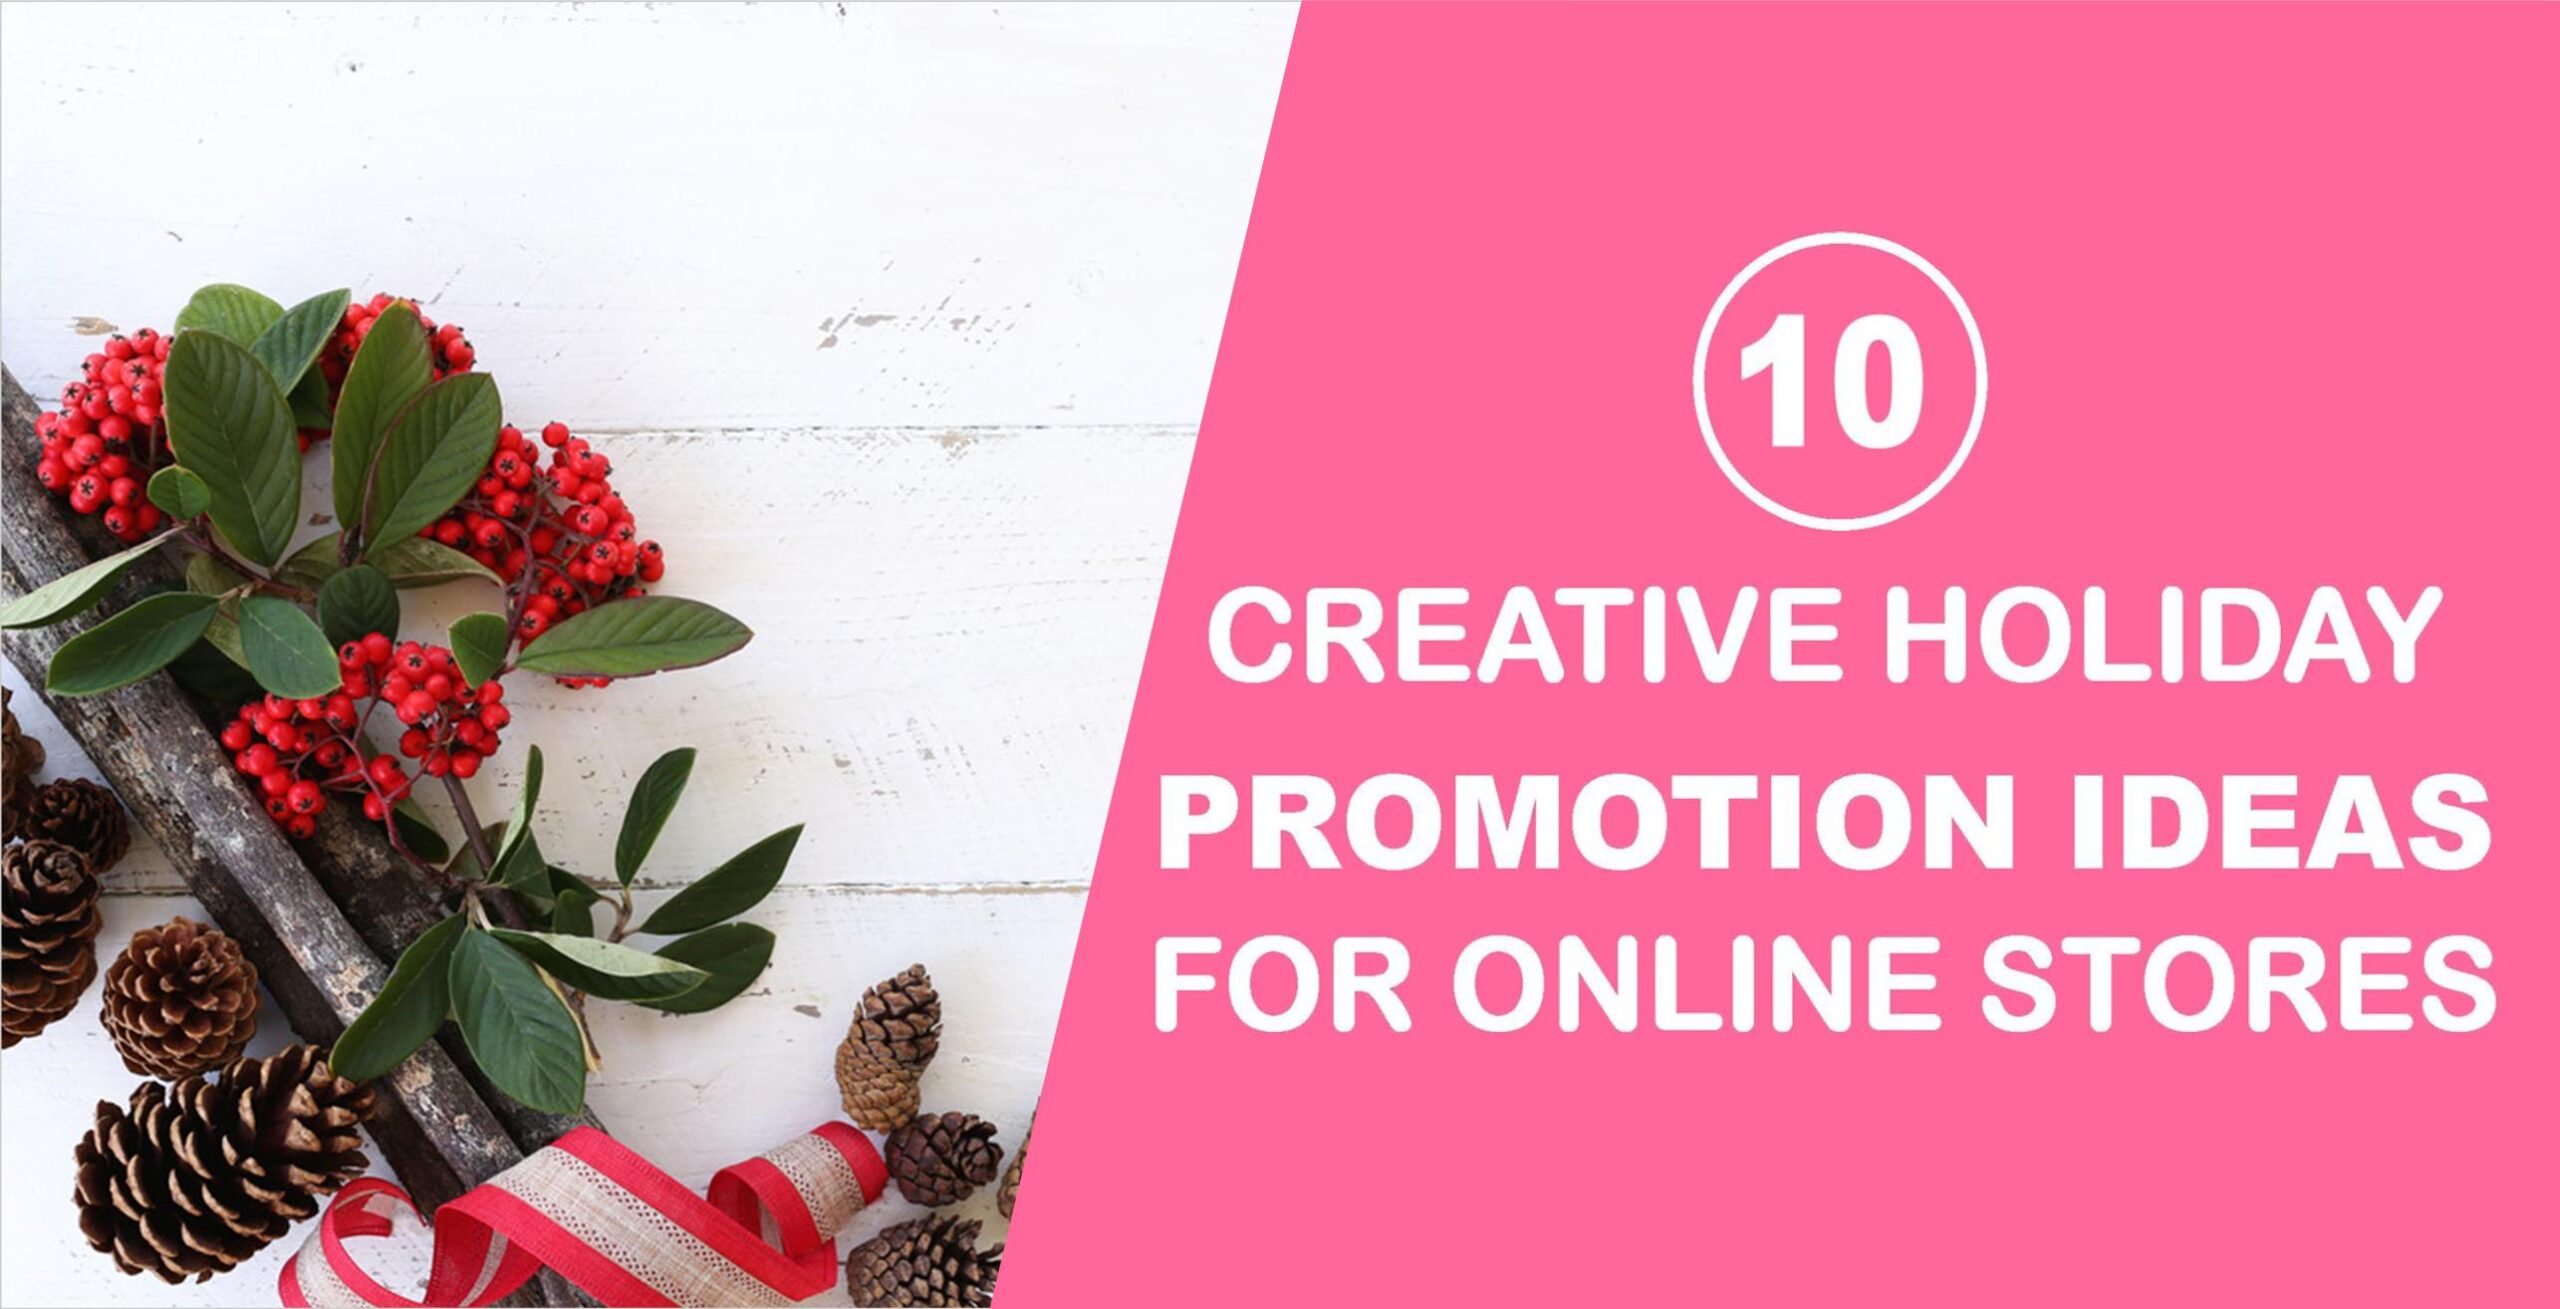 10 Creative Holiday Promotion Ideas for Online Stores